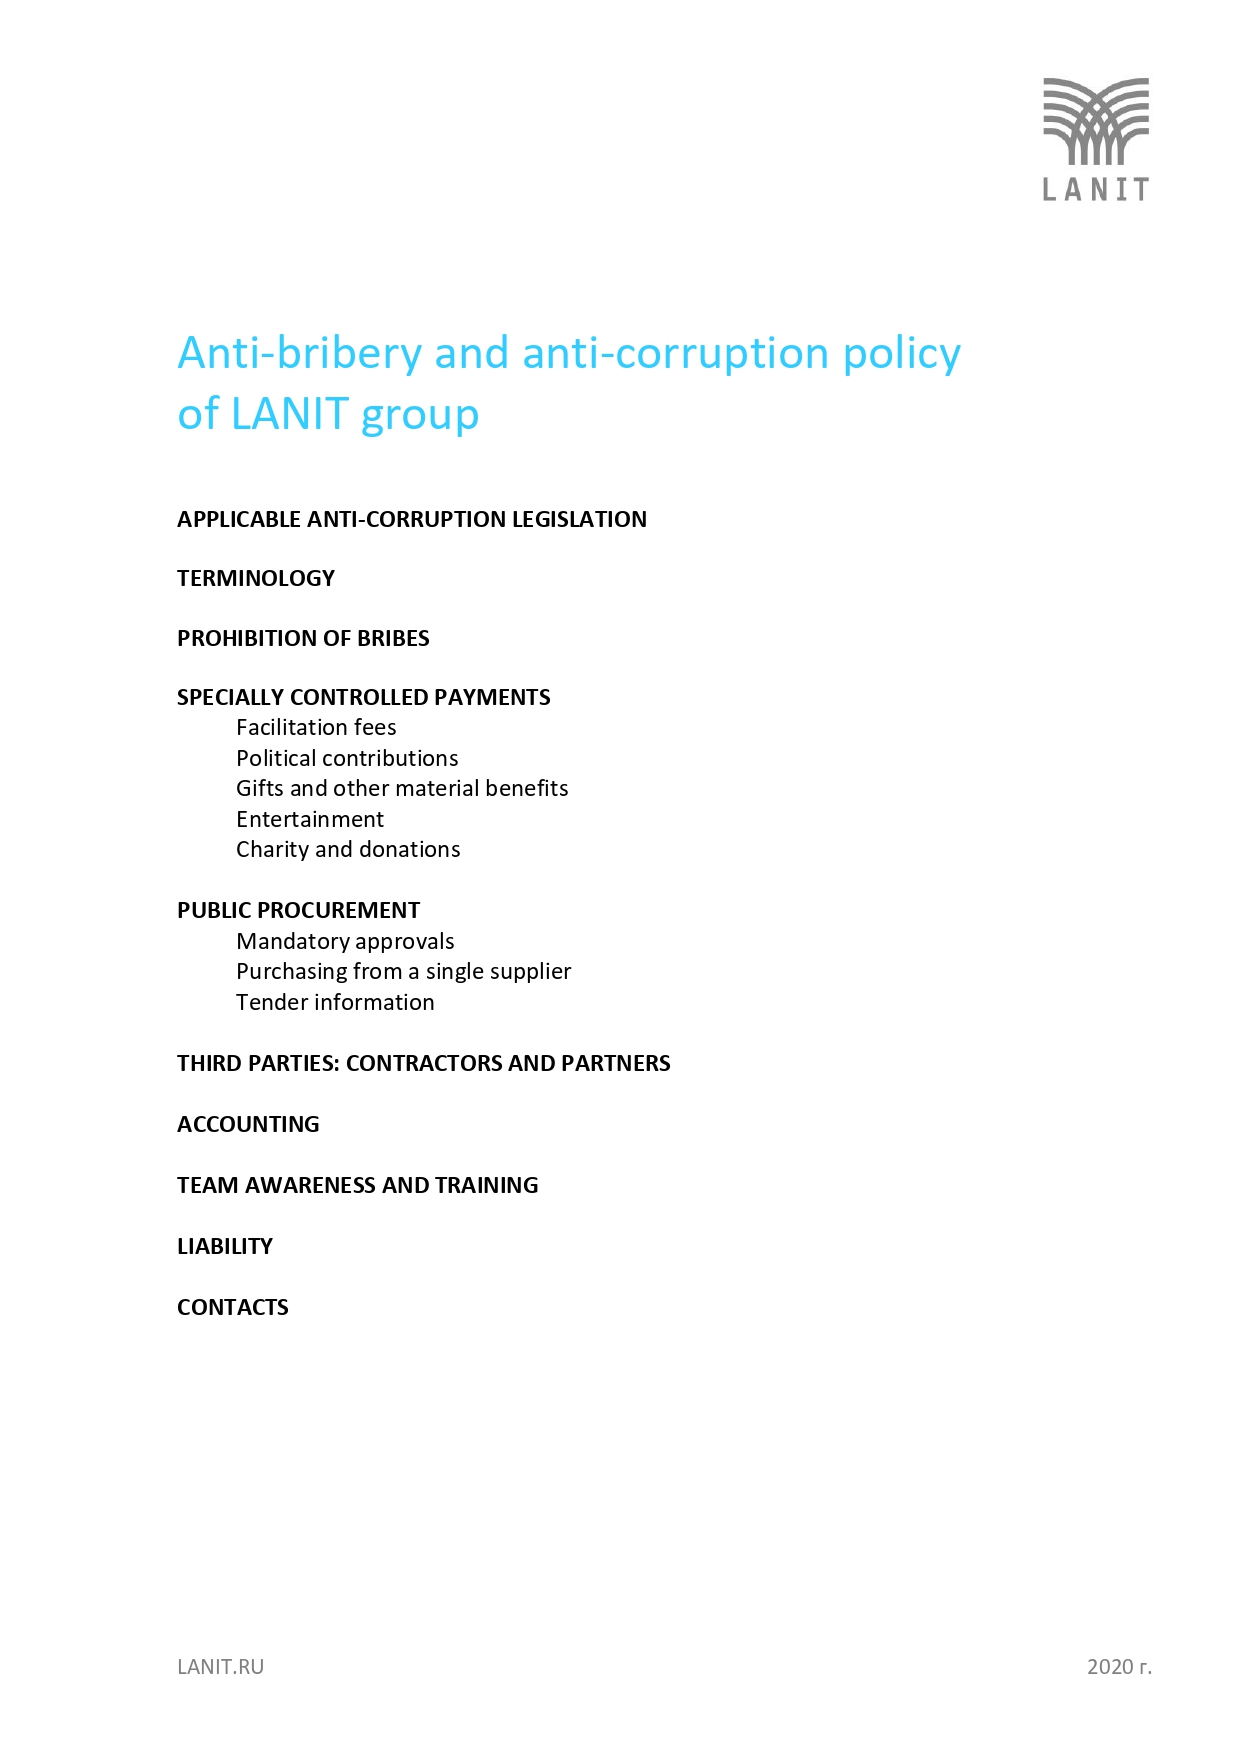 ANTI-BRIBERY AND ANTI-CORRUPTION POLICY OG LANIT GROUP